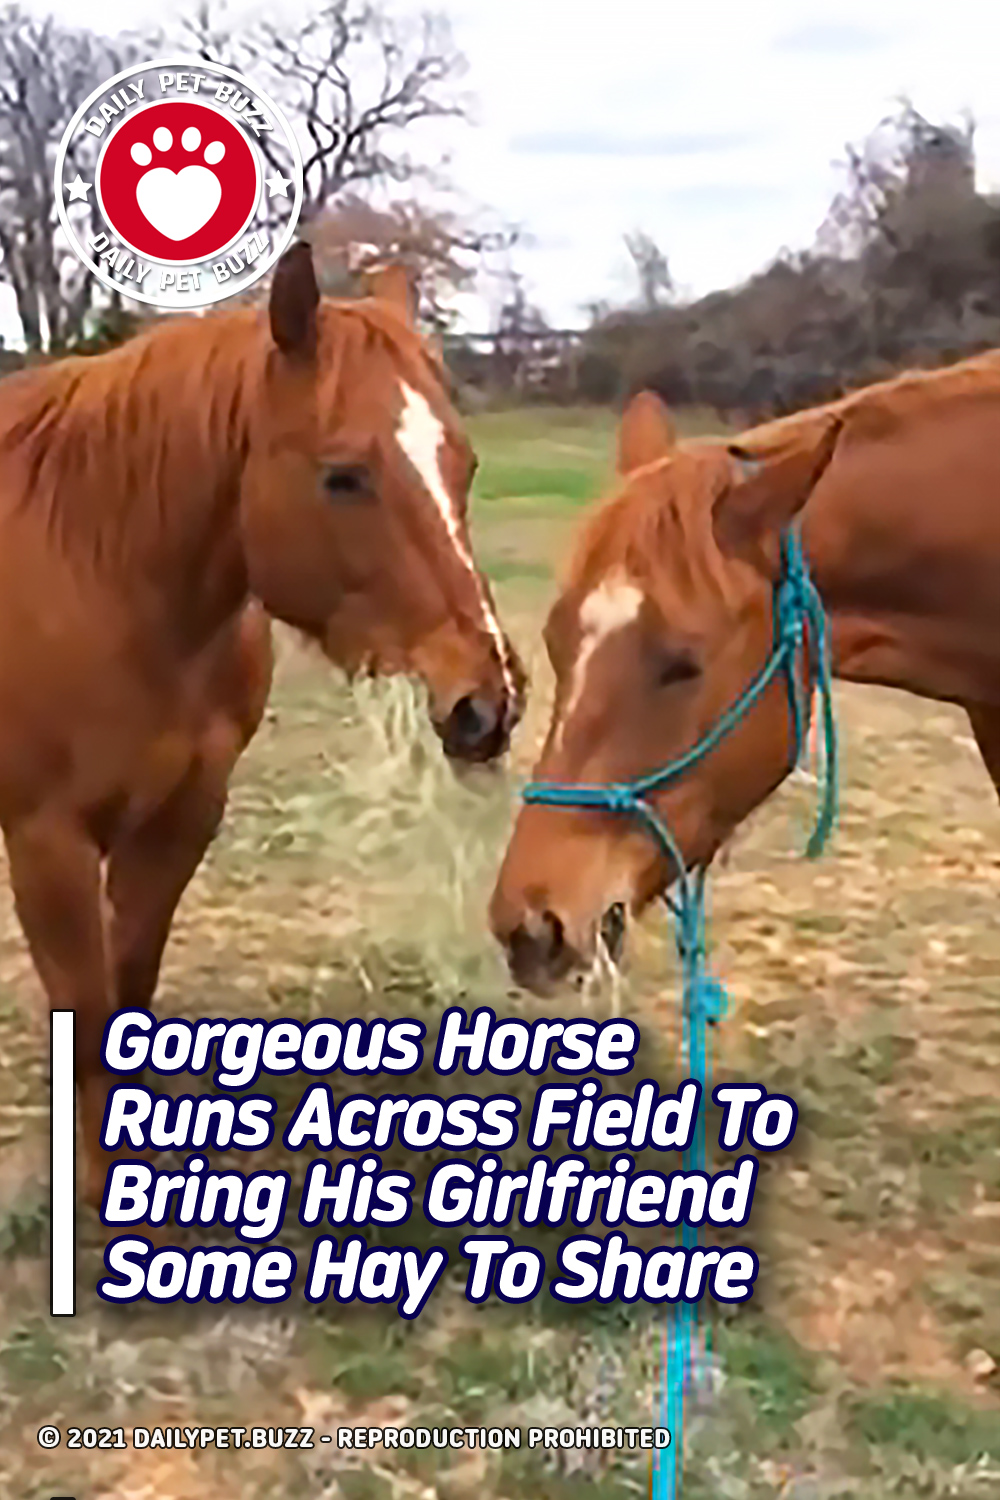 Gorgeous Horse Runs Across Field To Bring His Girlfriend Some Hay To Share